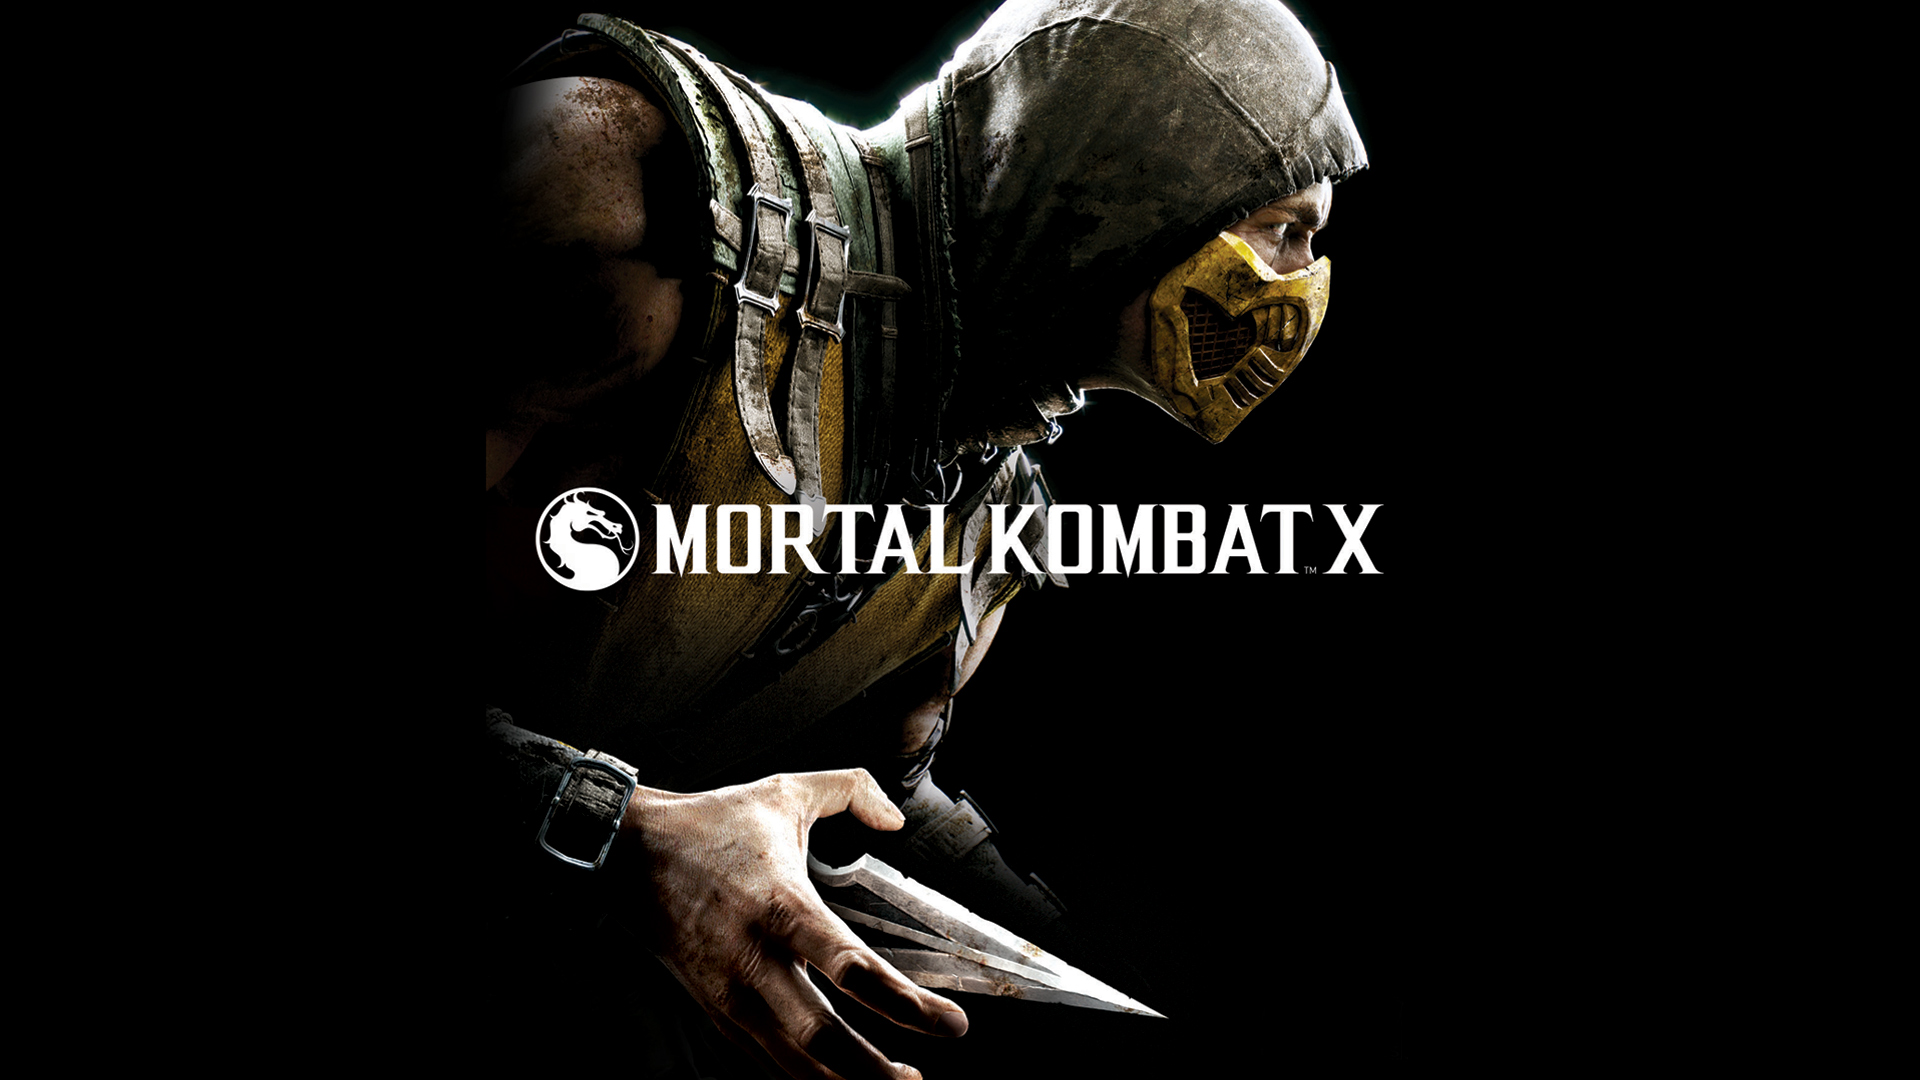 Mortal Kombat X Wallpaper 1080p